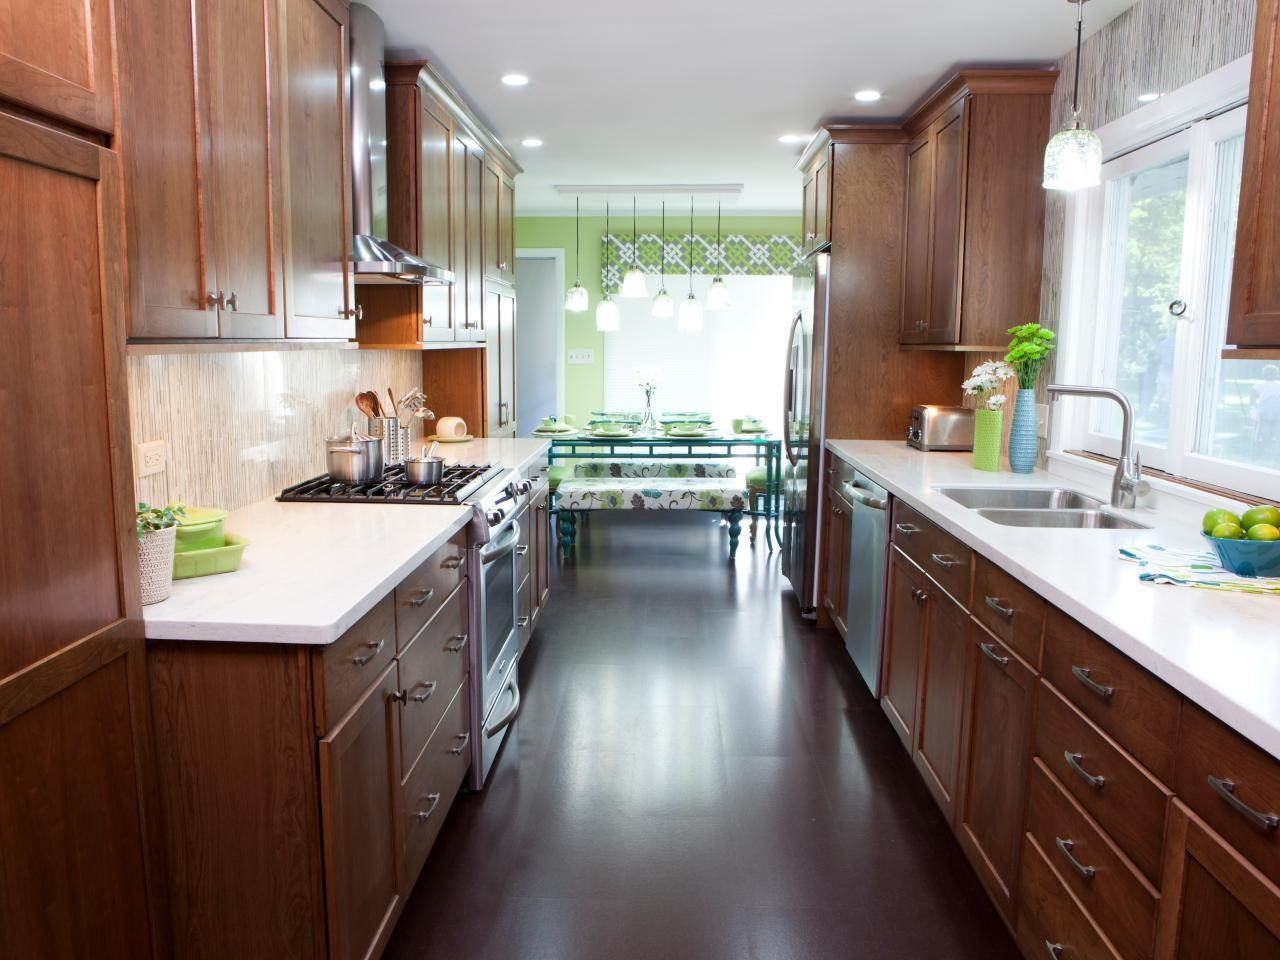 9 Creative Galley Kitchen Design Ideas That Will Leave You ...